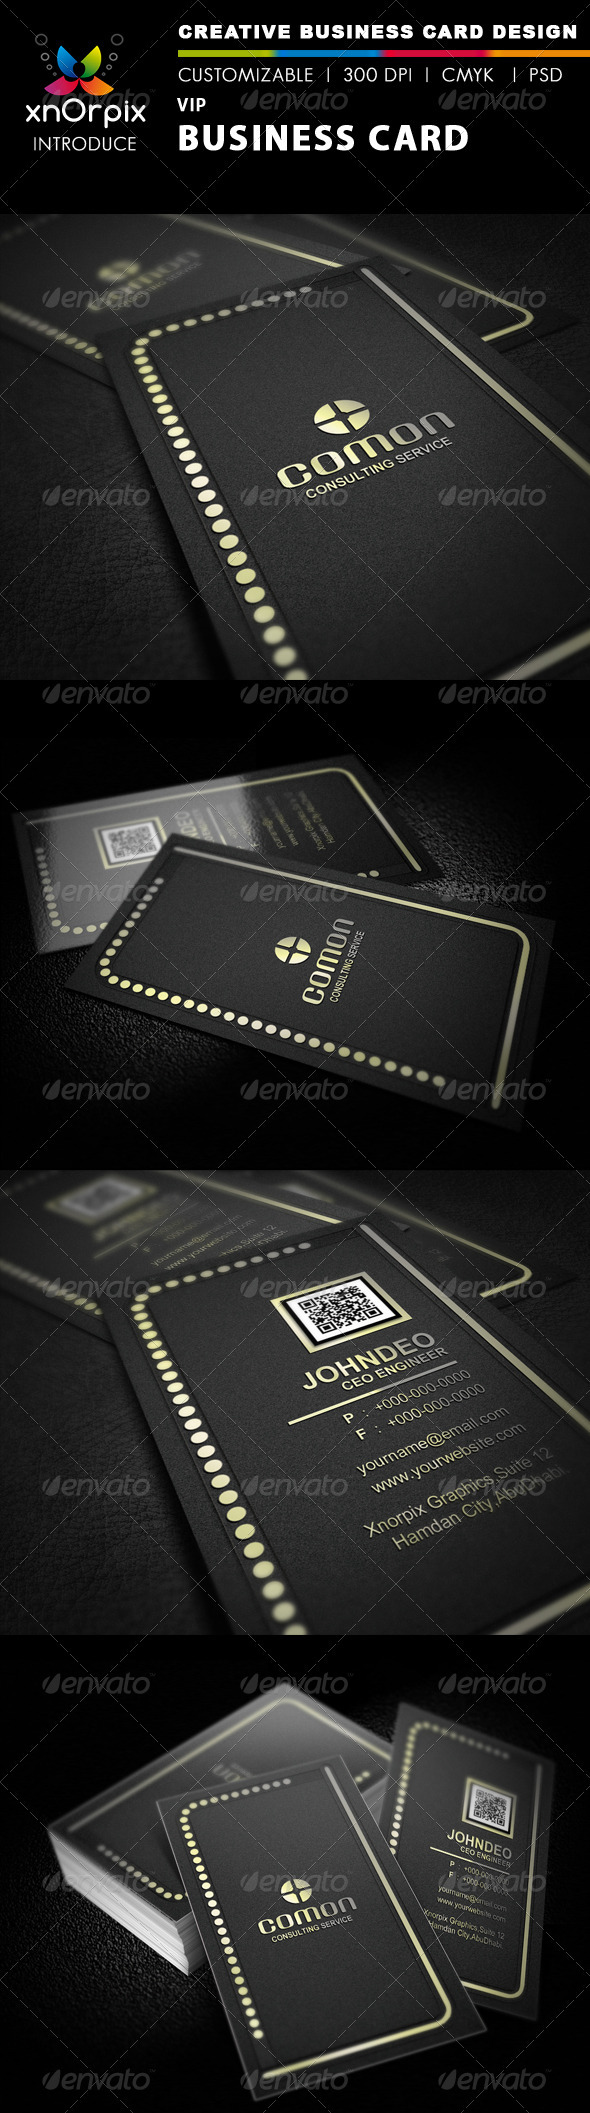 Vip business card by axnorpix graphicriver vip business card business cards print templates reheart Images